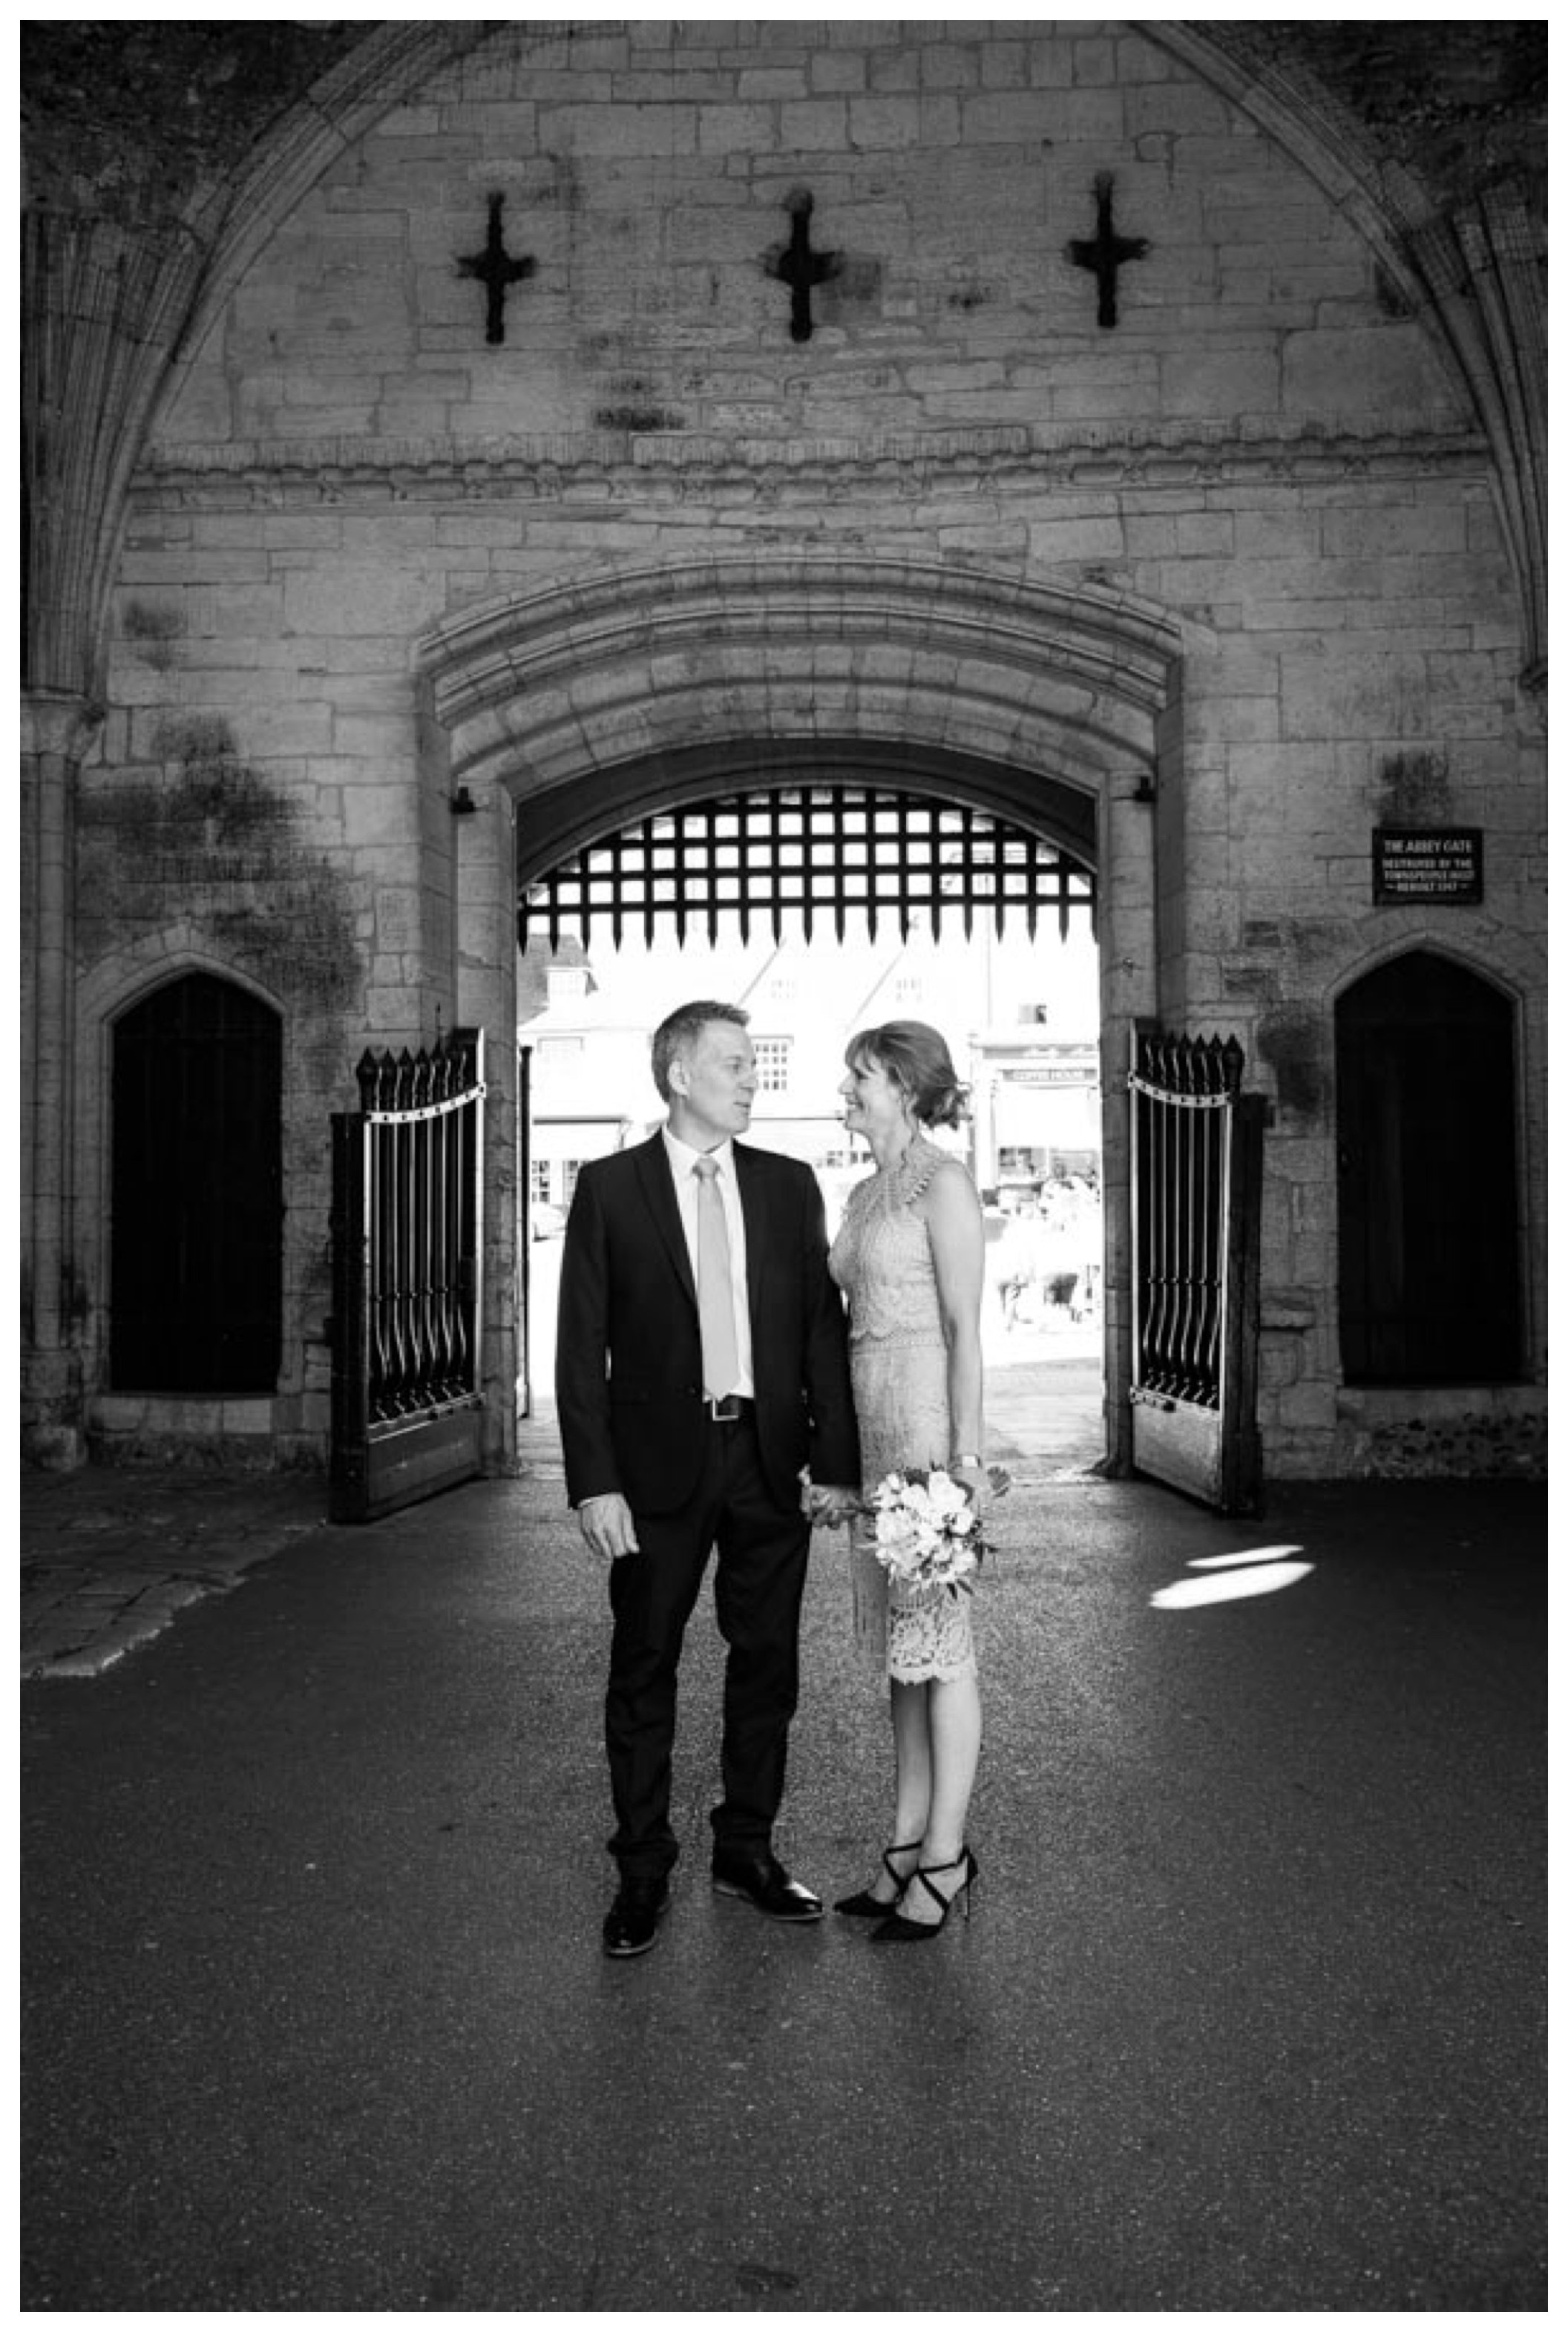 black and white image bride and groom at wedding in abbey gates bury st edmunds